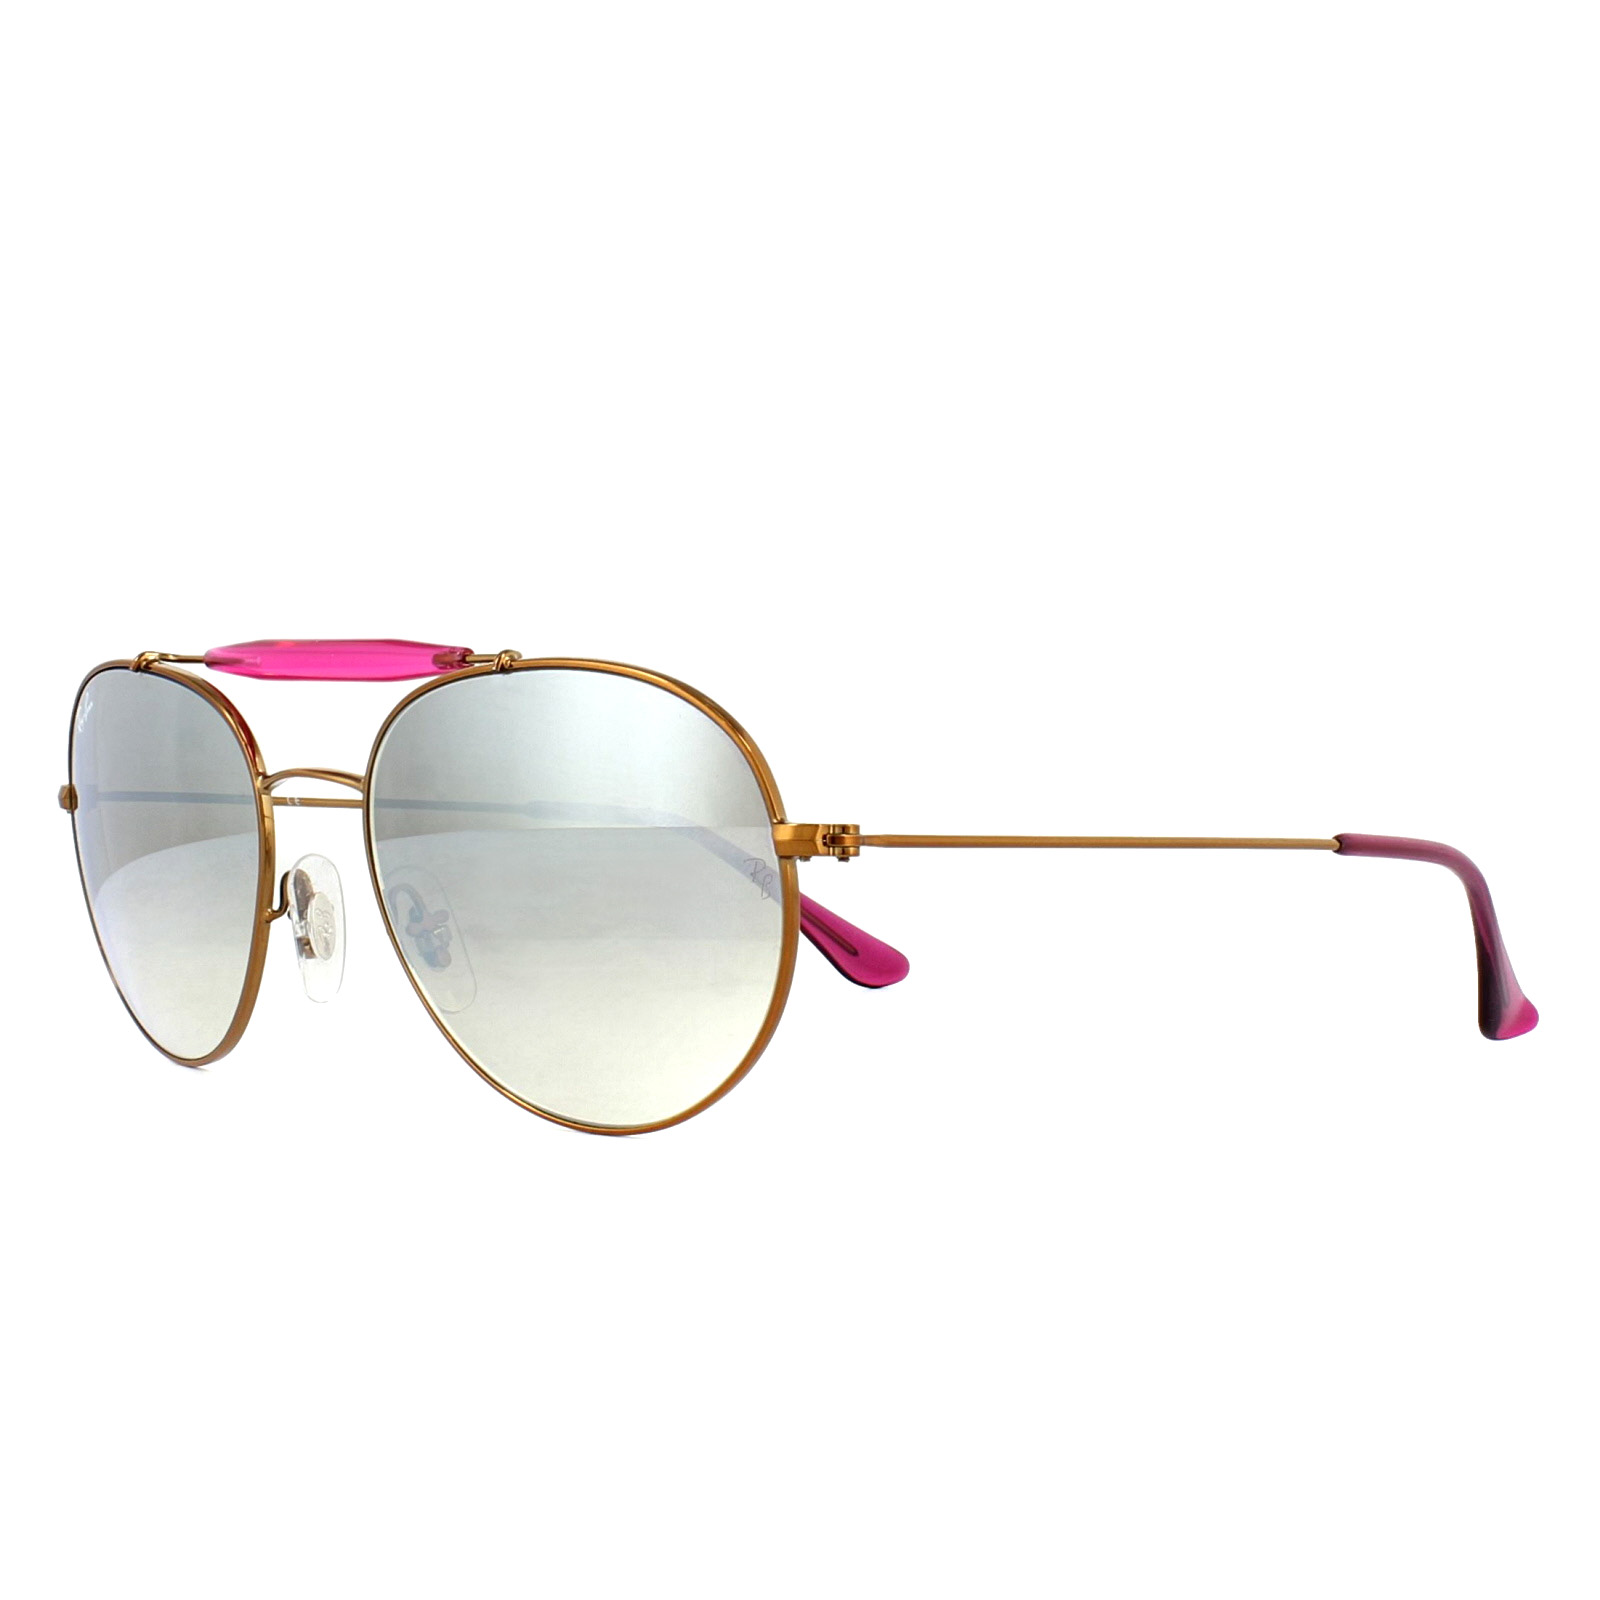 19a664d37b120 Sentinel Ray-Ban Sunglasses 3540 198 9U Bronze Copper Pink Silver Gradient  Mirror 53mm